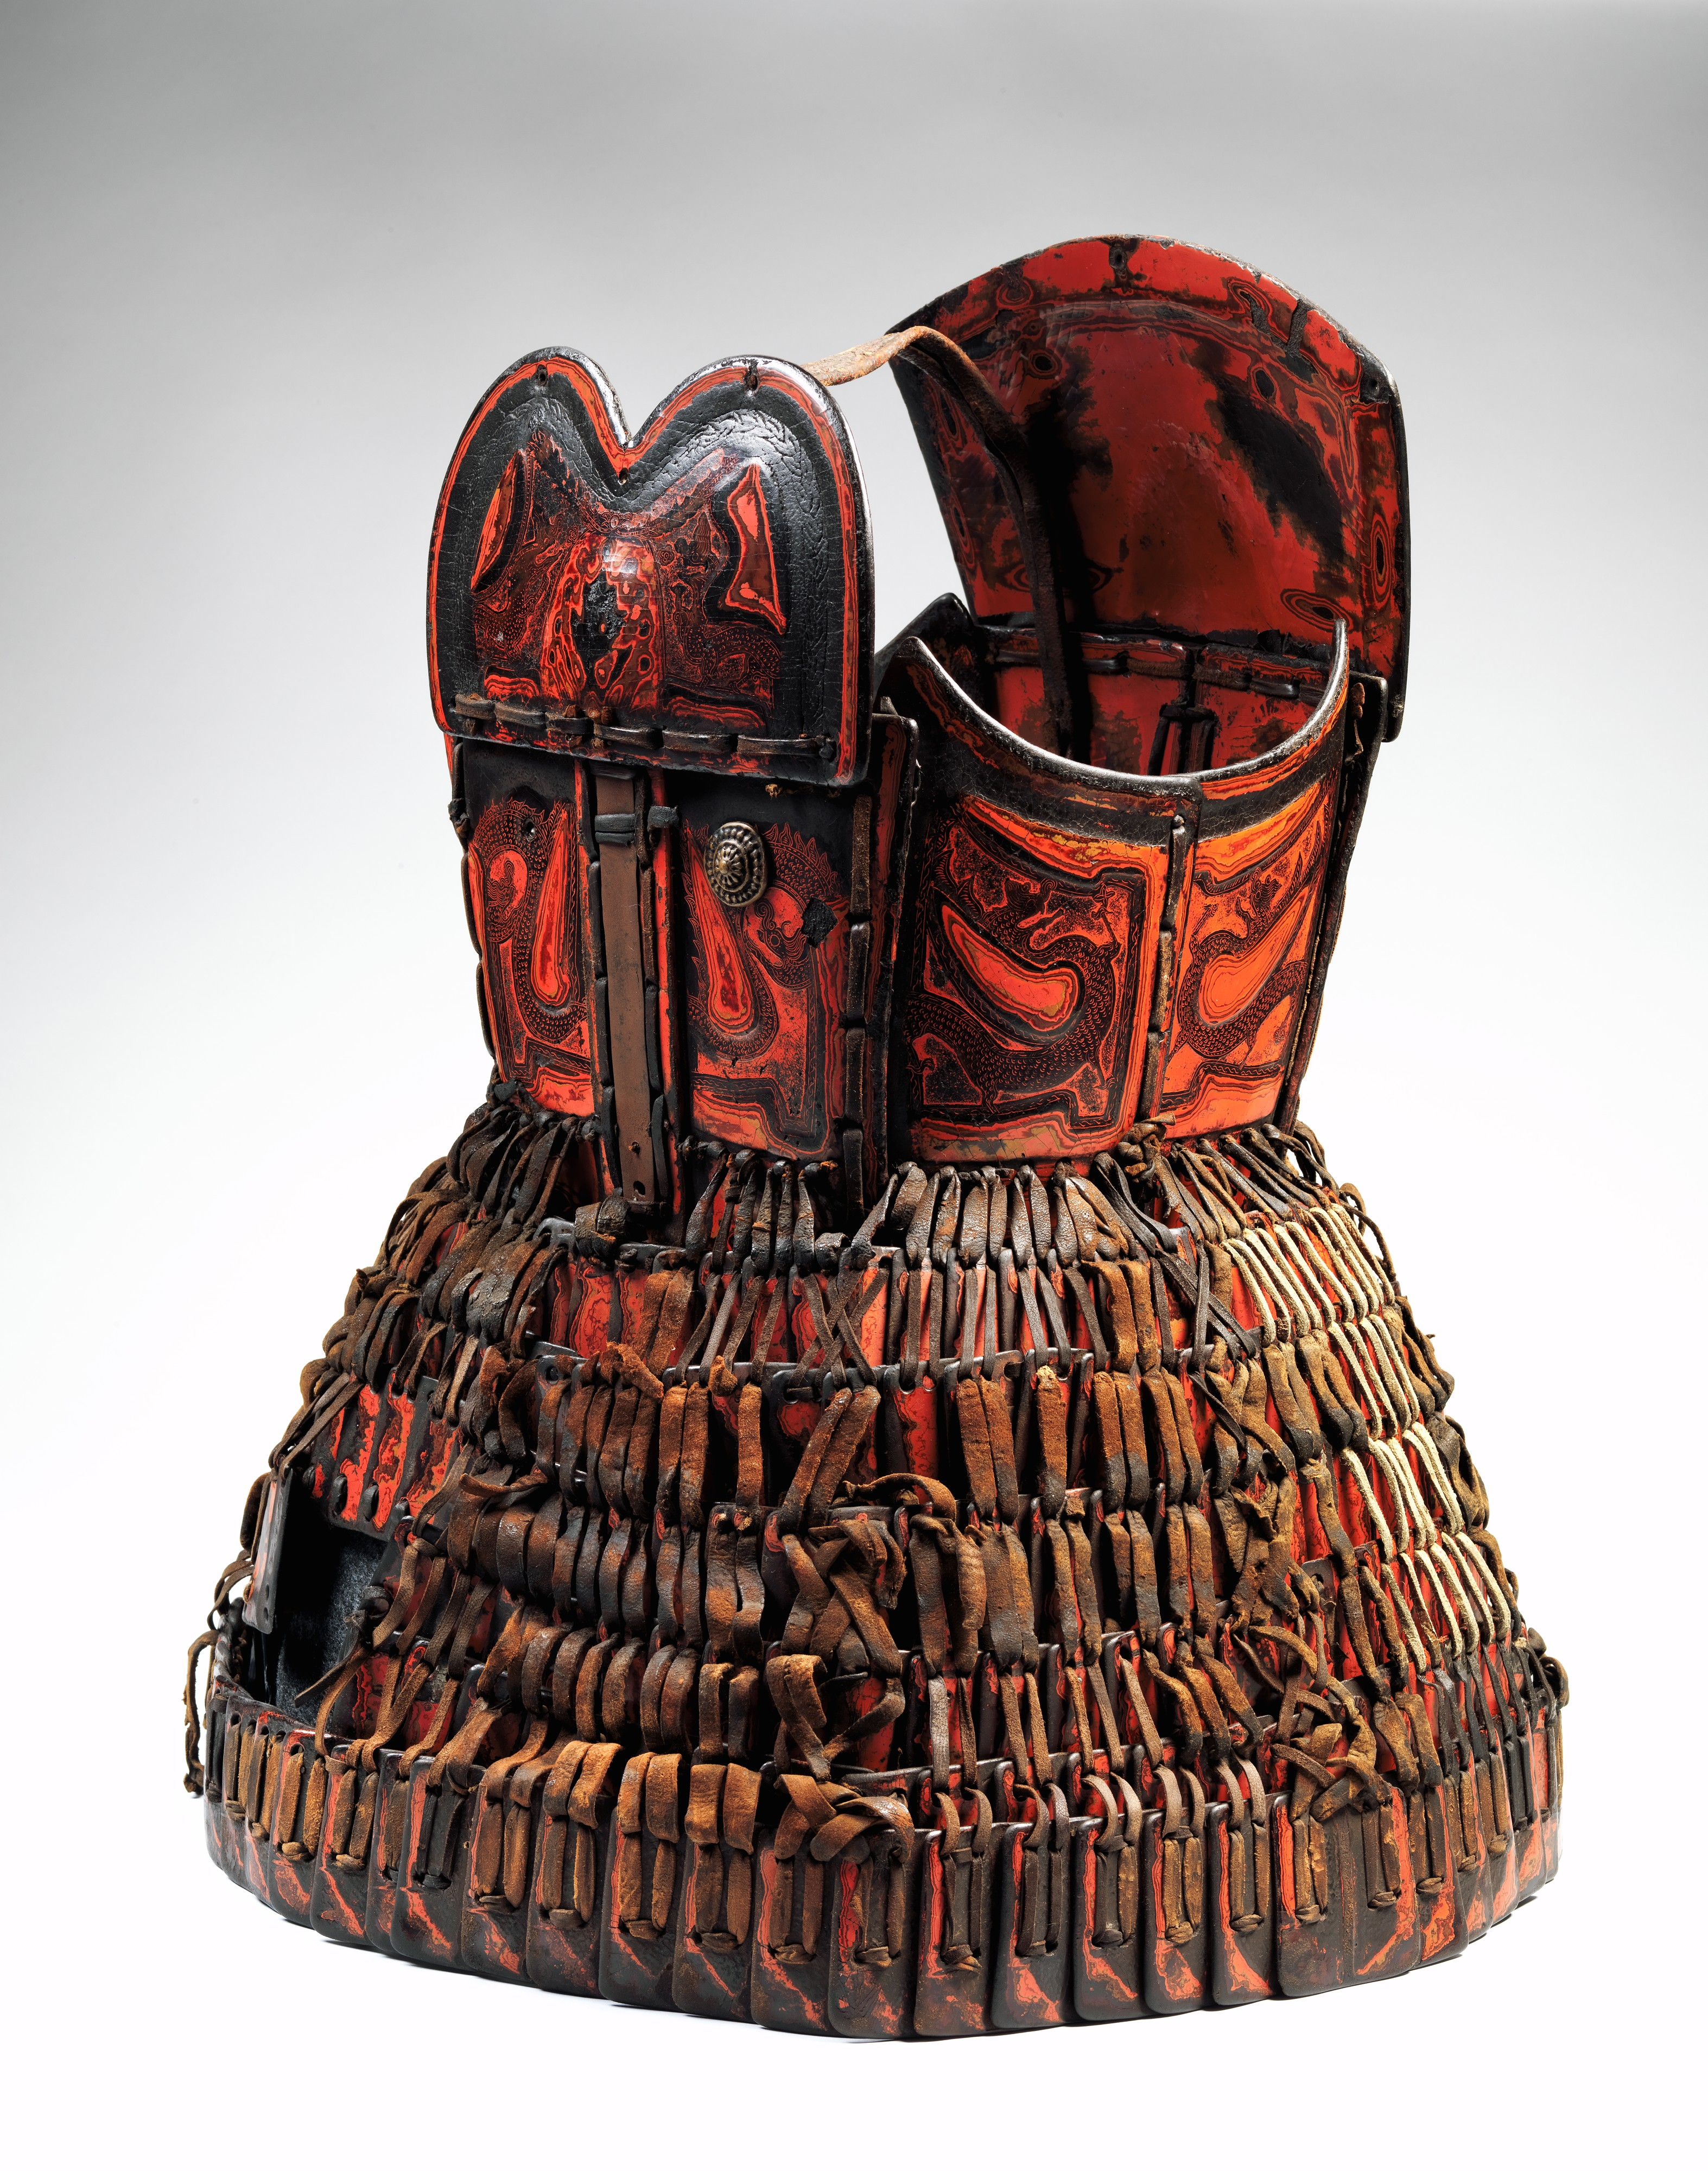 Dali Kingdom armor from the Metropolitan Museum in New York.